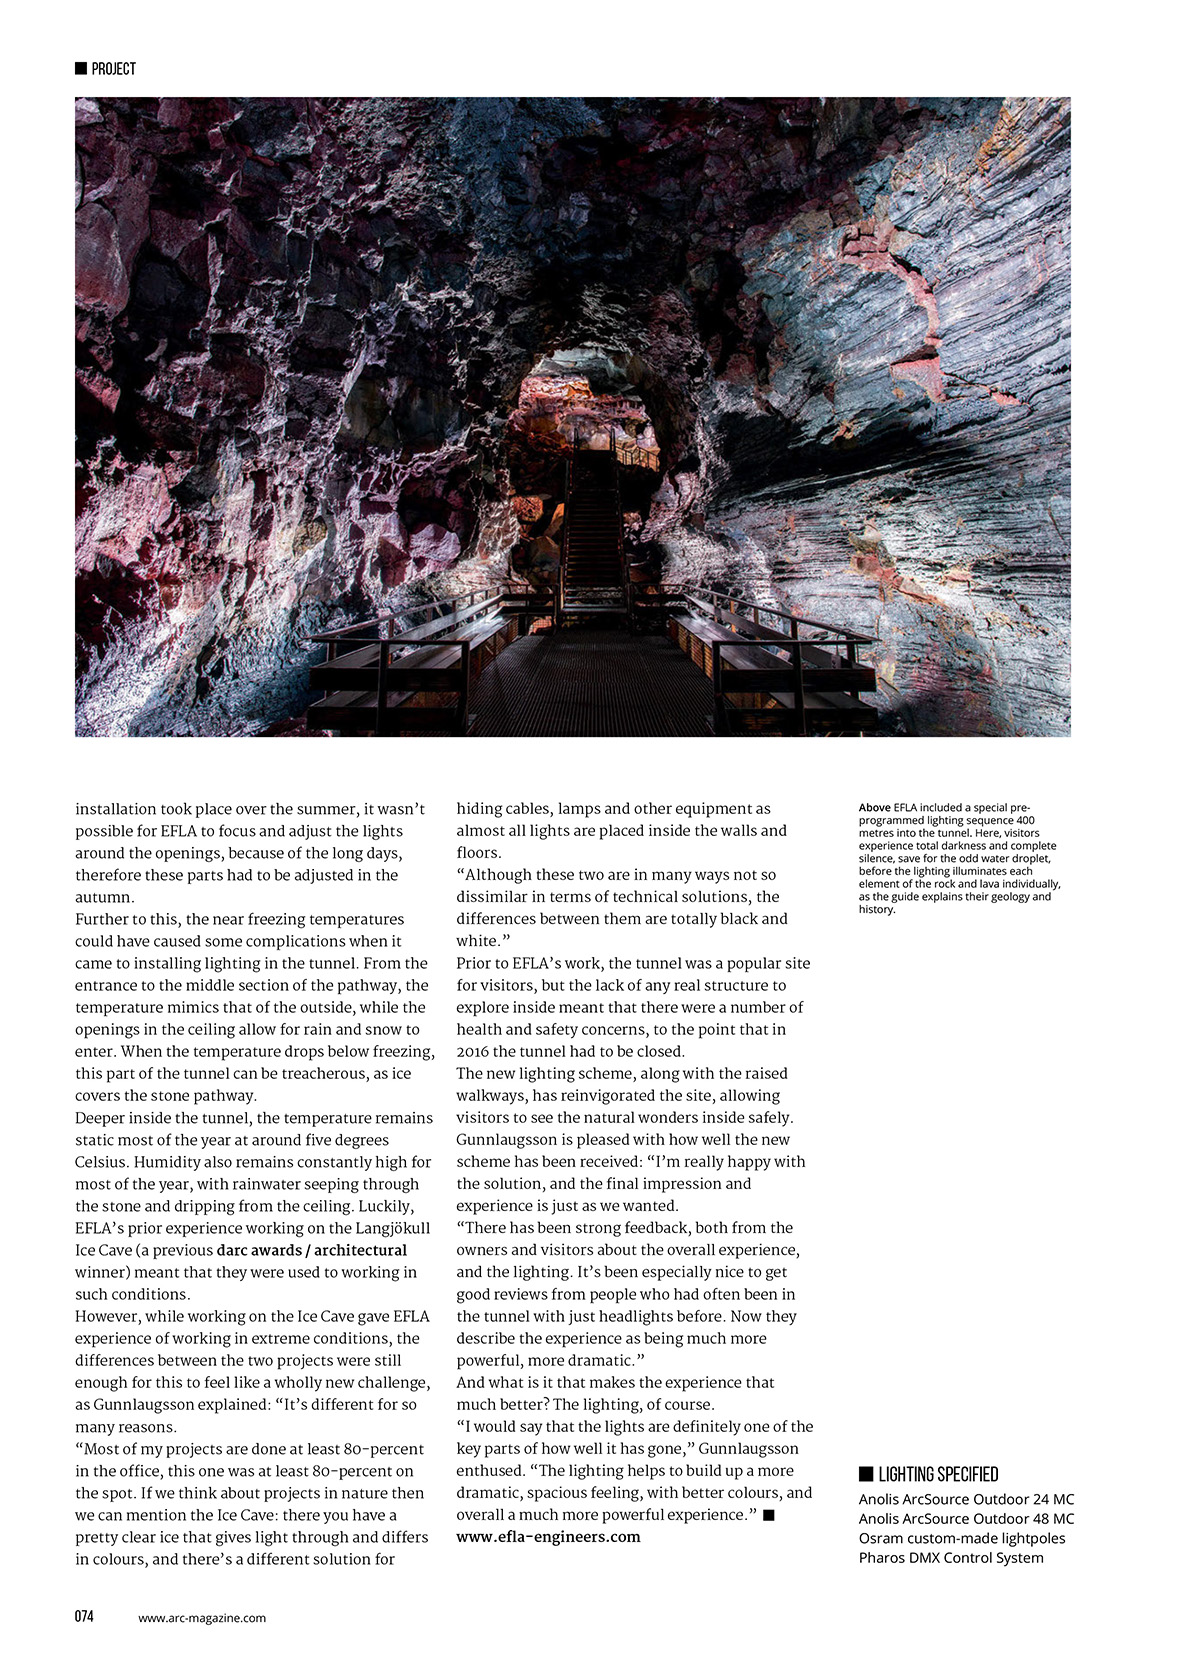 arc magazine_107_Lava Tunnel article_pp66-74 8w.jpg